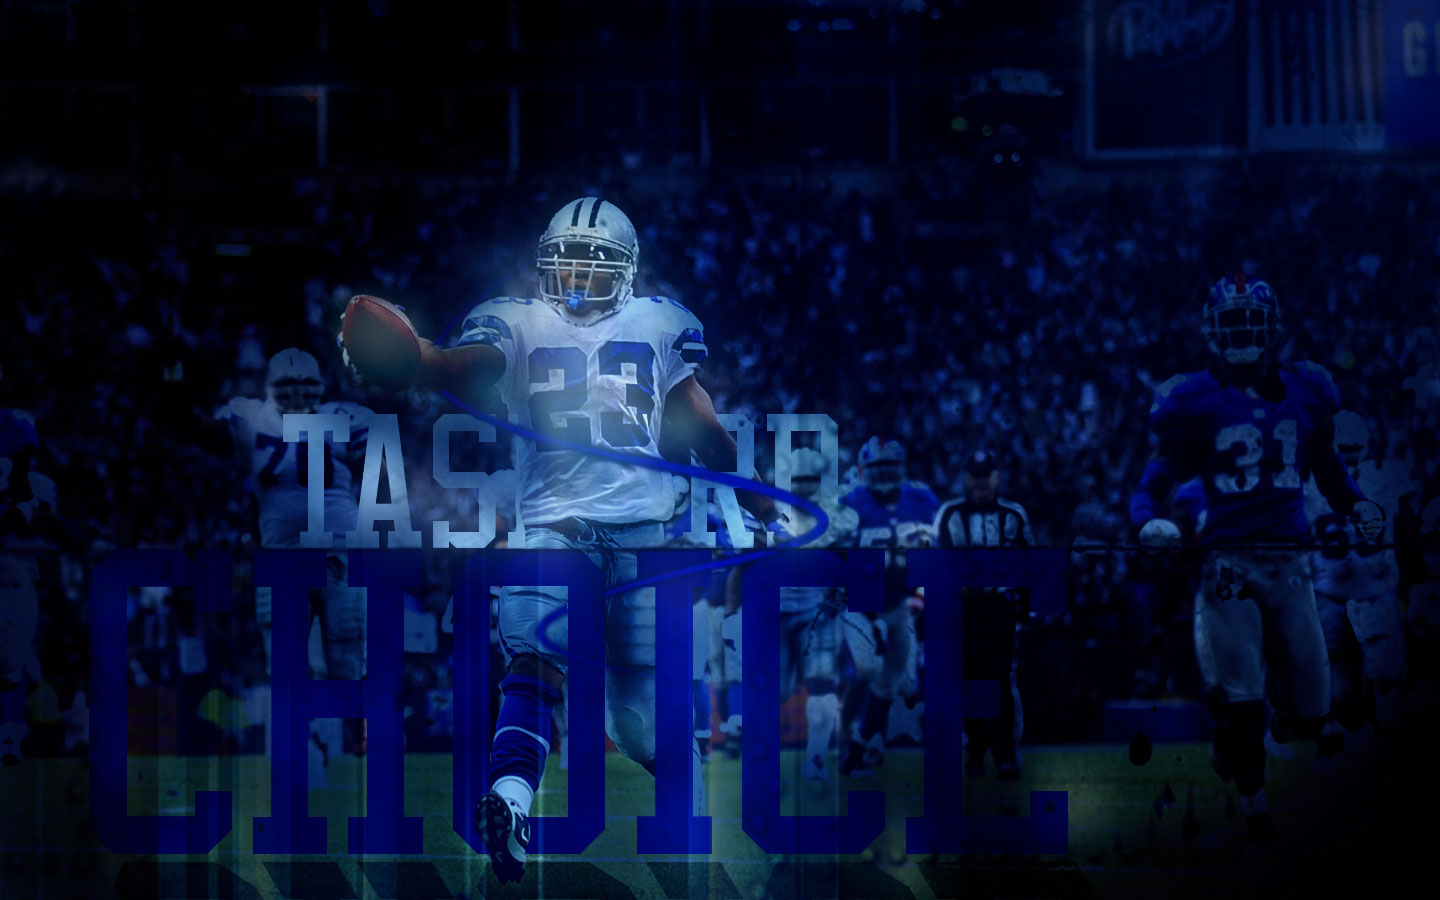 Free download Dallas Cowboys wallpaper